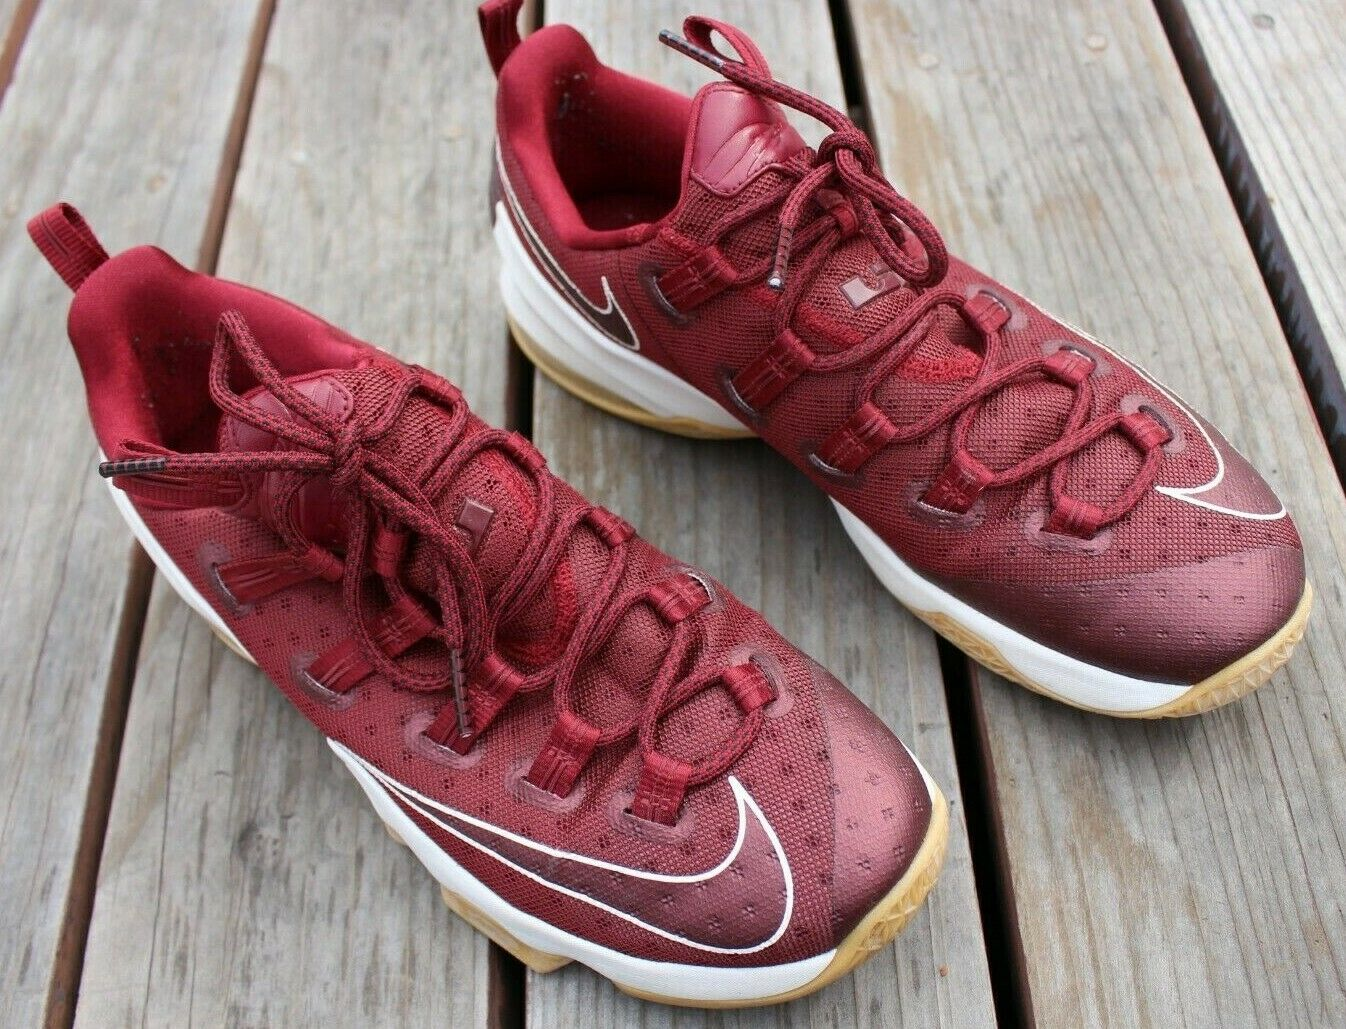 NIKE LEBRON XIII 13 LOW TEAM RED BURGUNDY MAROON SAIL WHITE 831925-610 SIZE 12